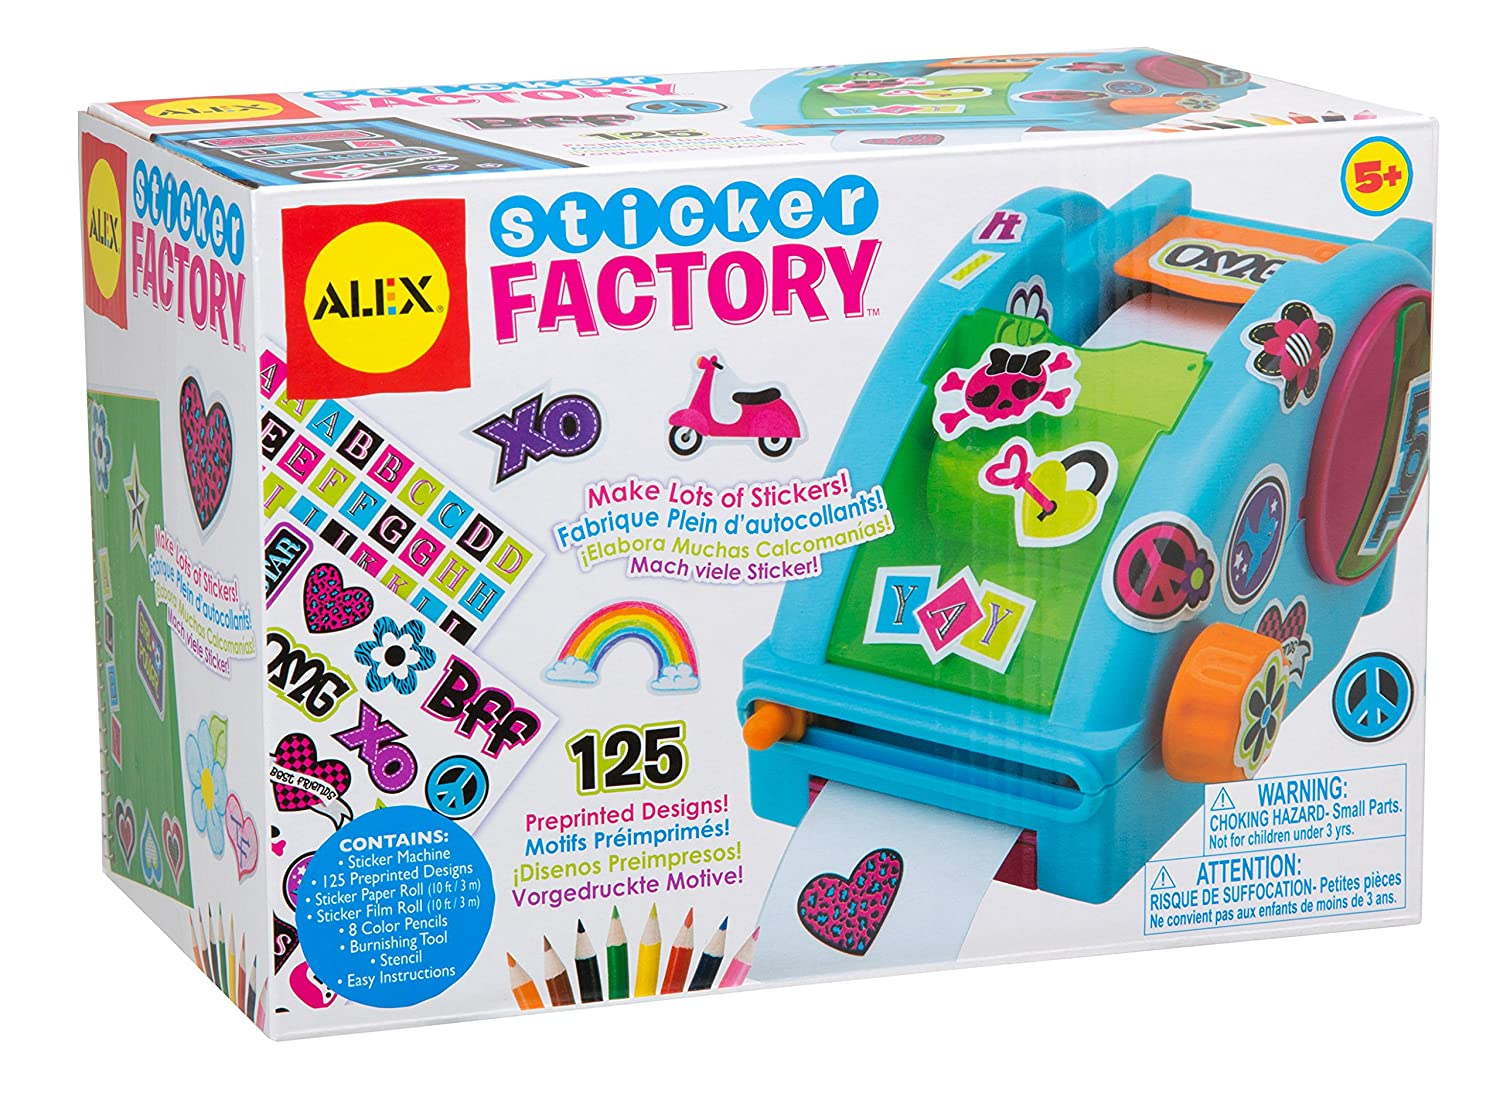 Buy alex toys craft sticker factory online at low prices in india amazon in